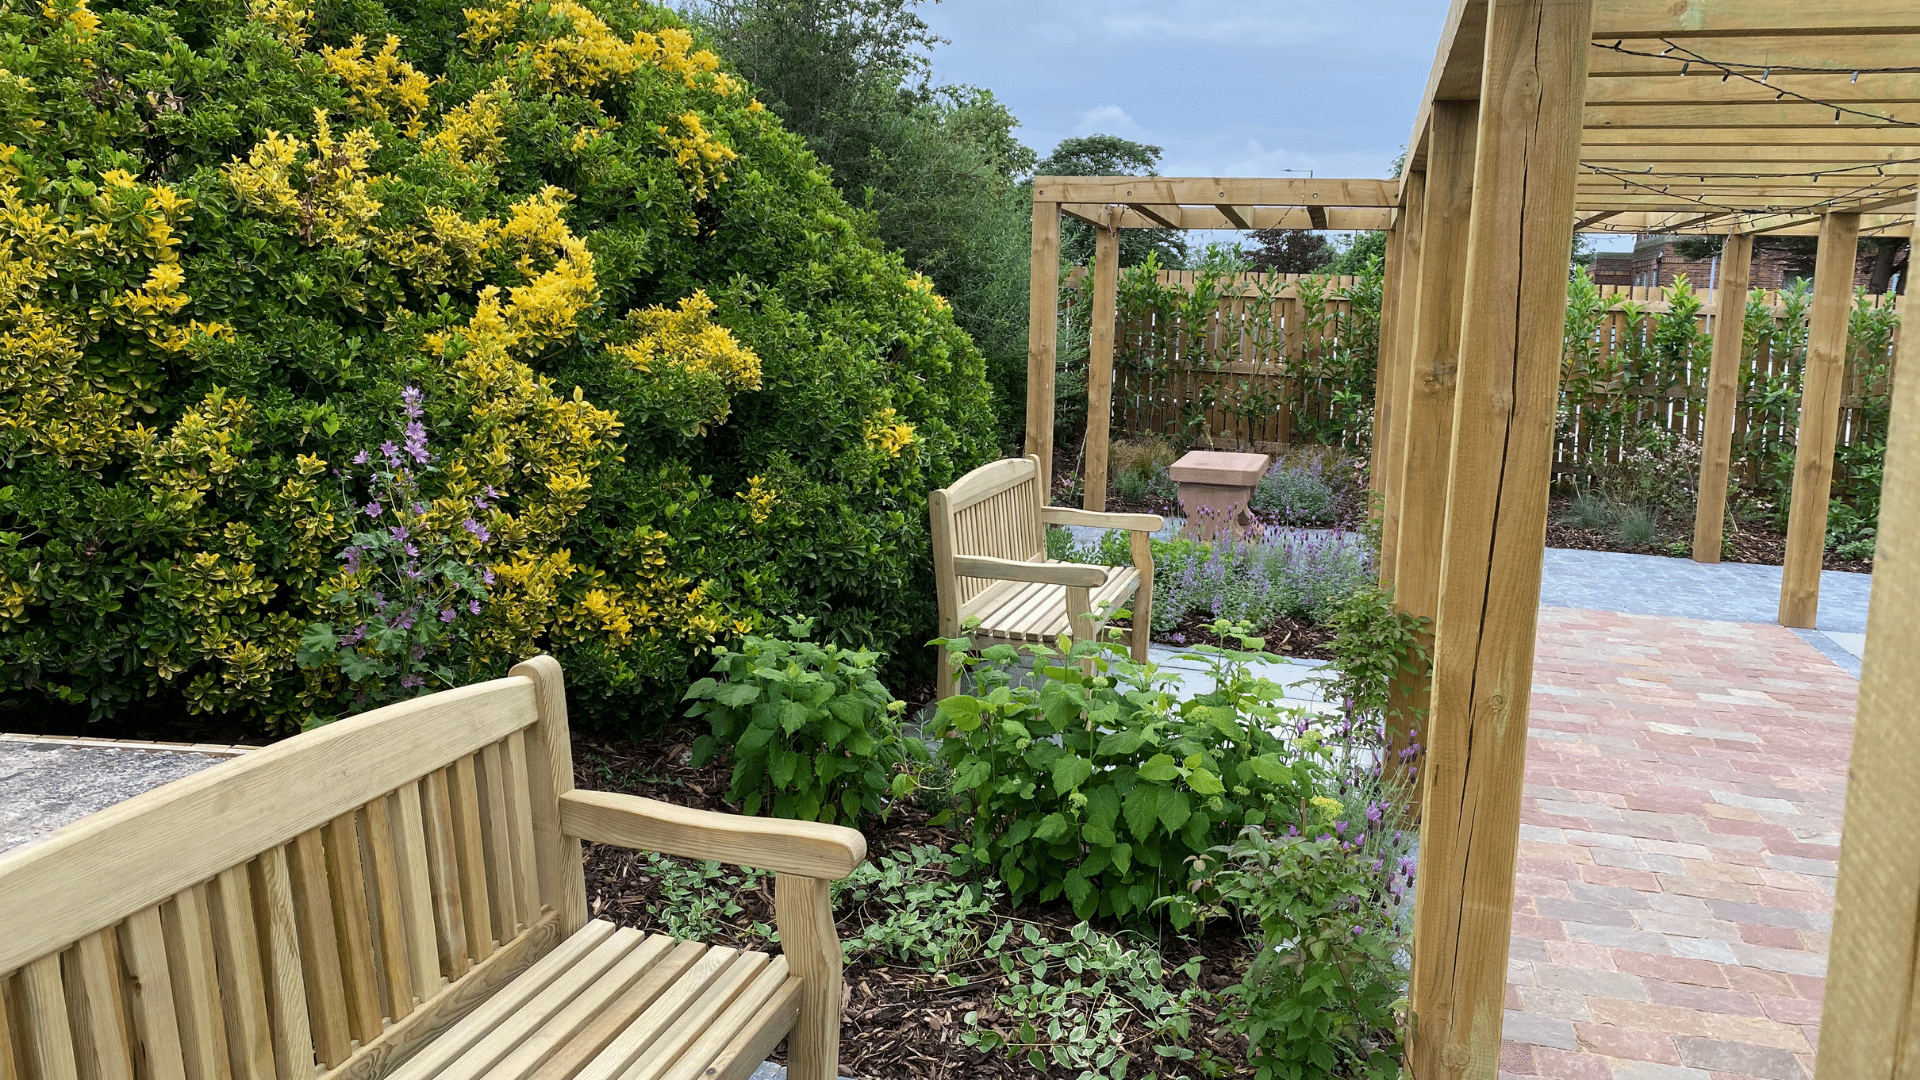 Plant donations see NHS hospital gardens bloom